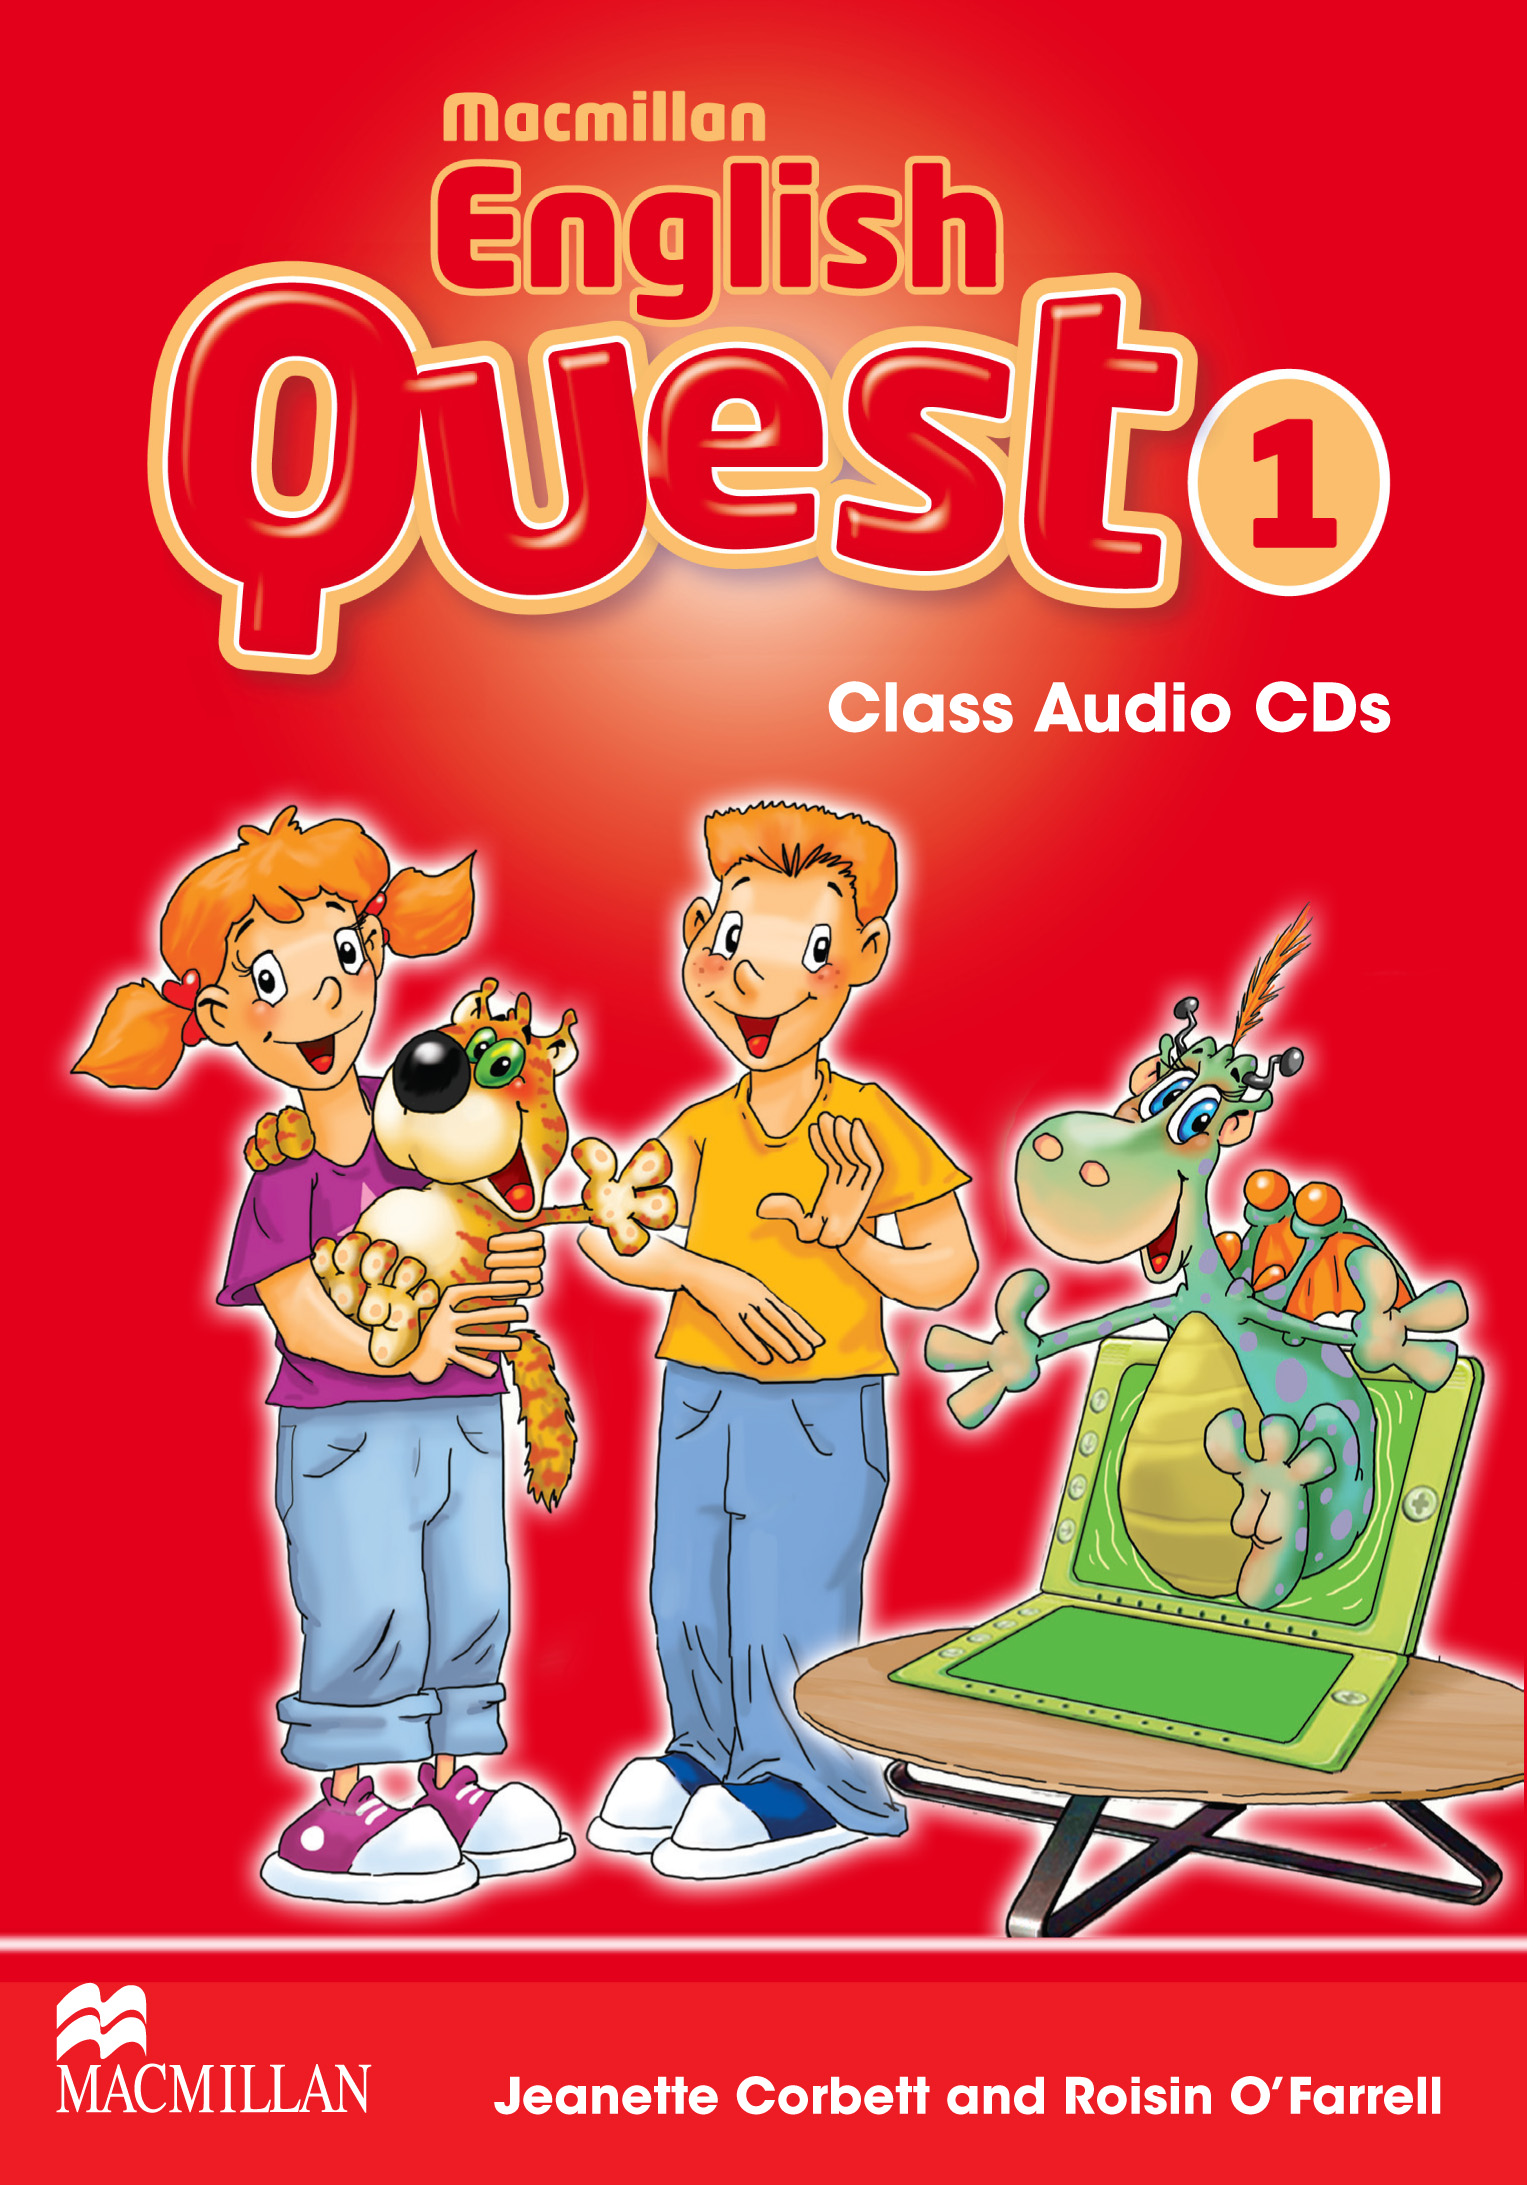 Macmillan English Quest 1 Class Audio CDs